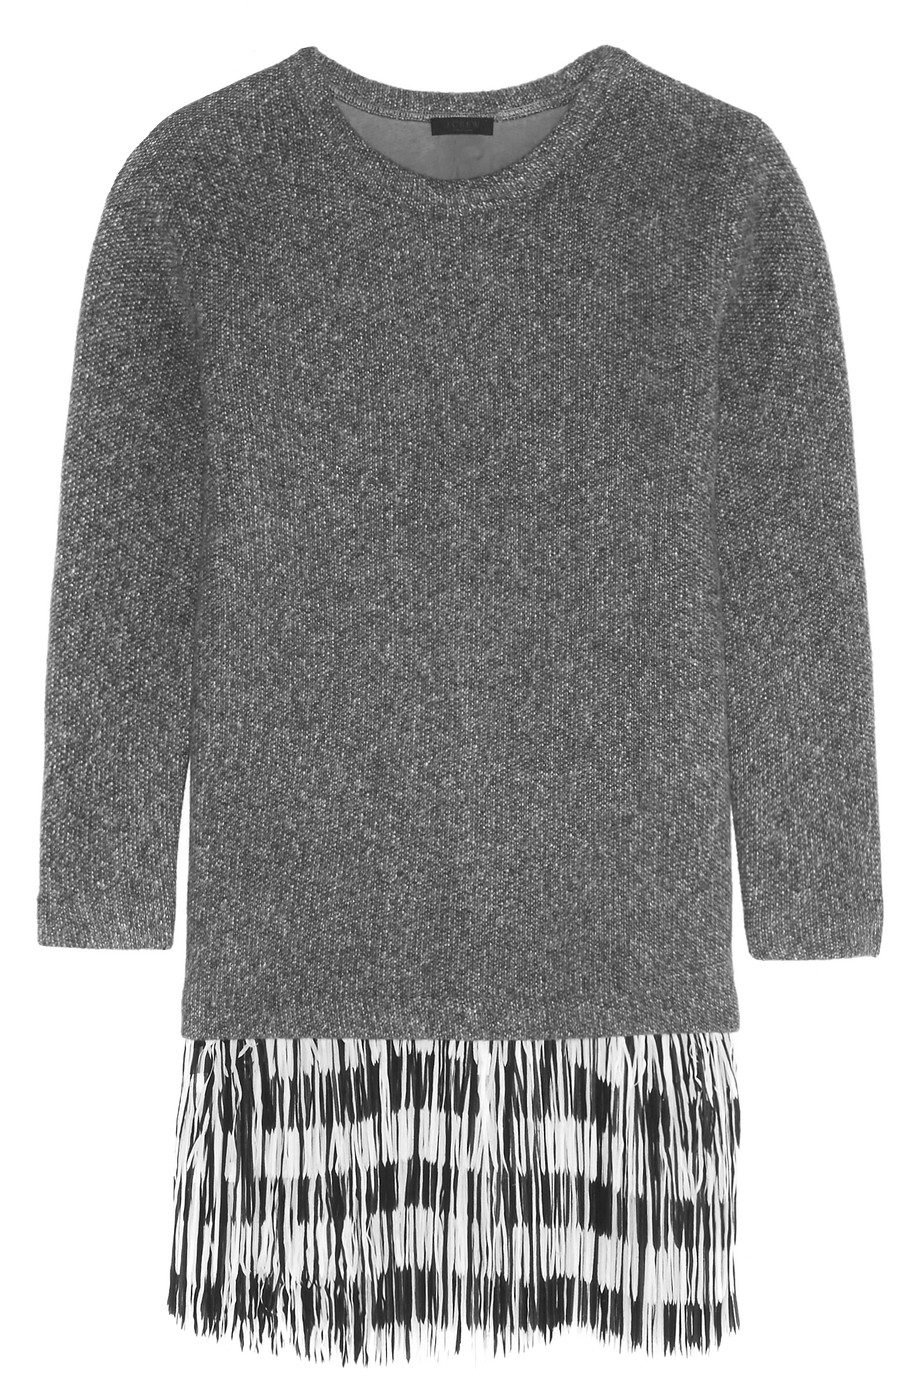 J.Crew Fringed Knitted Sweater Dress, Anthracite, Women's, Size: XL